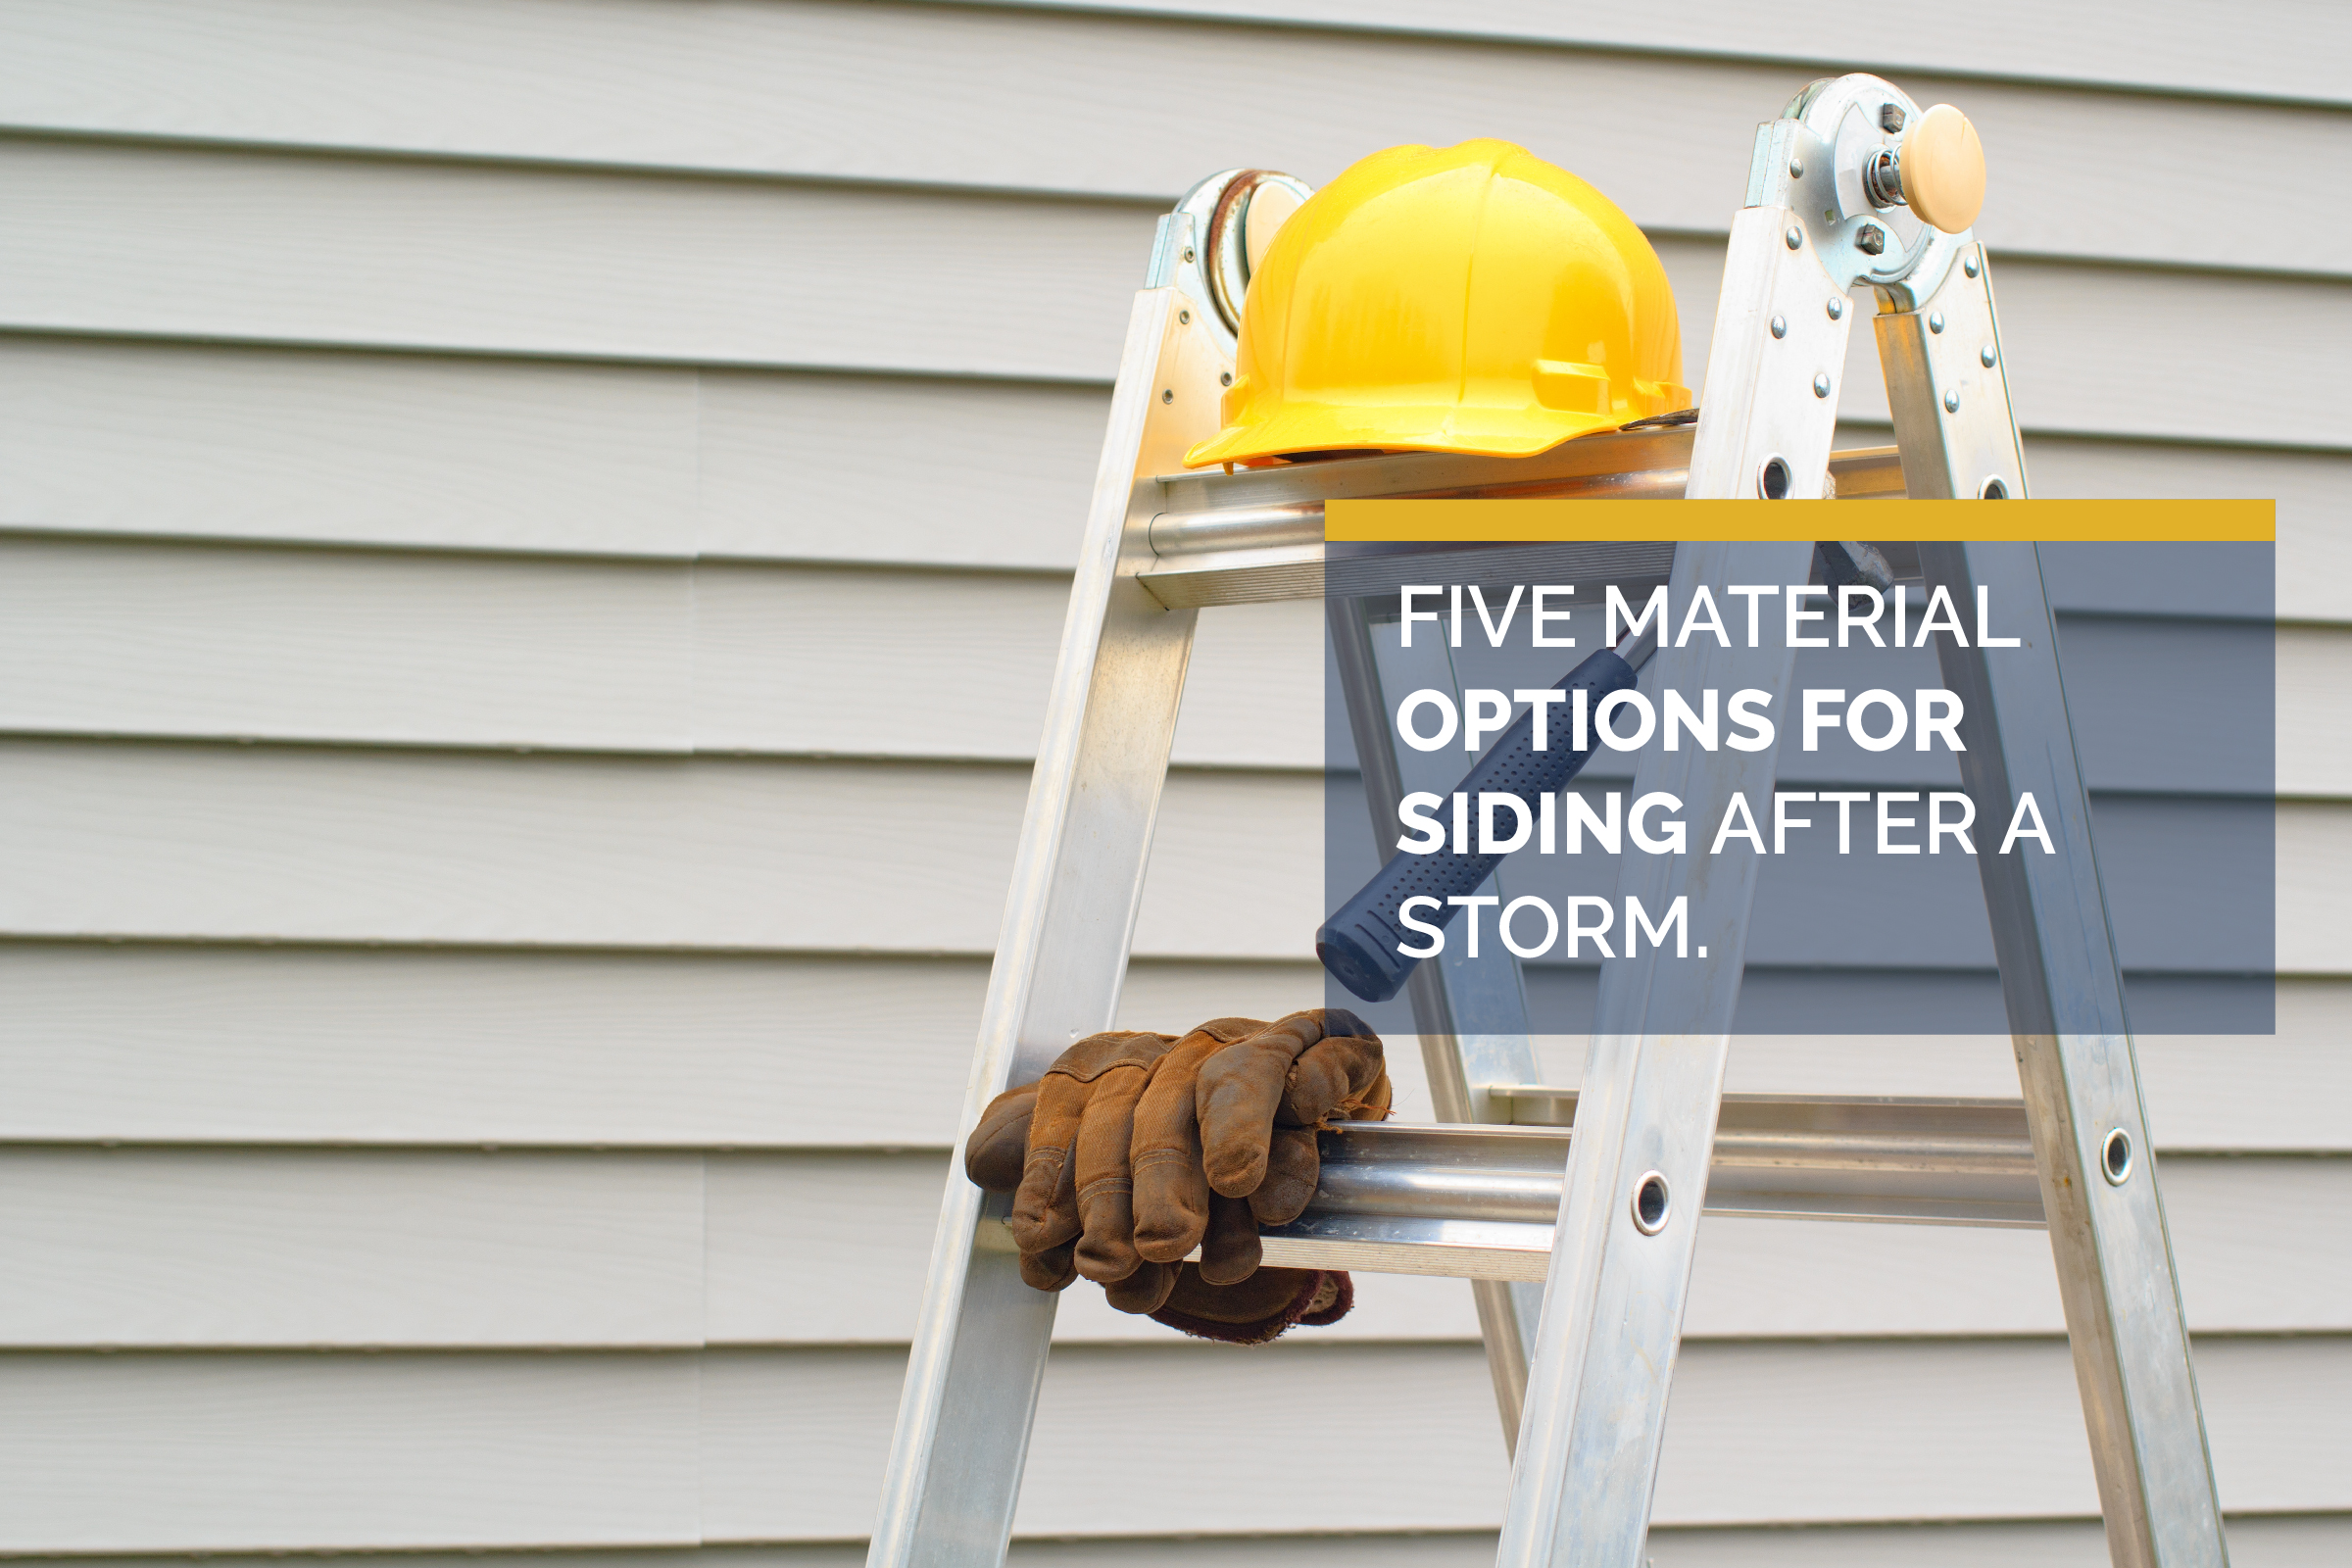 Top 5 Material Options for Replacing Your Siding After a Storm